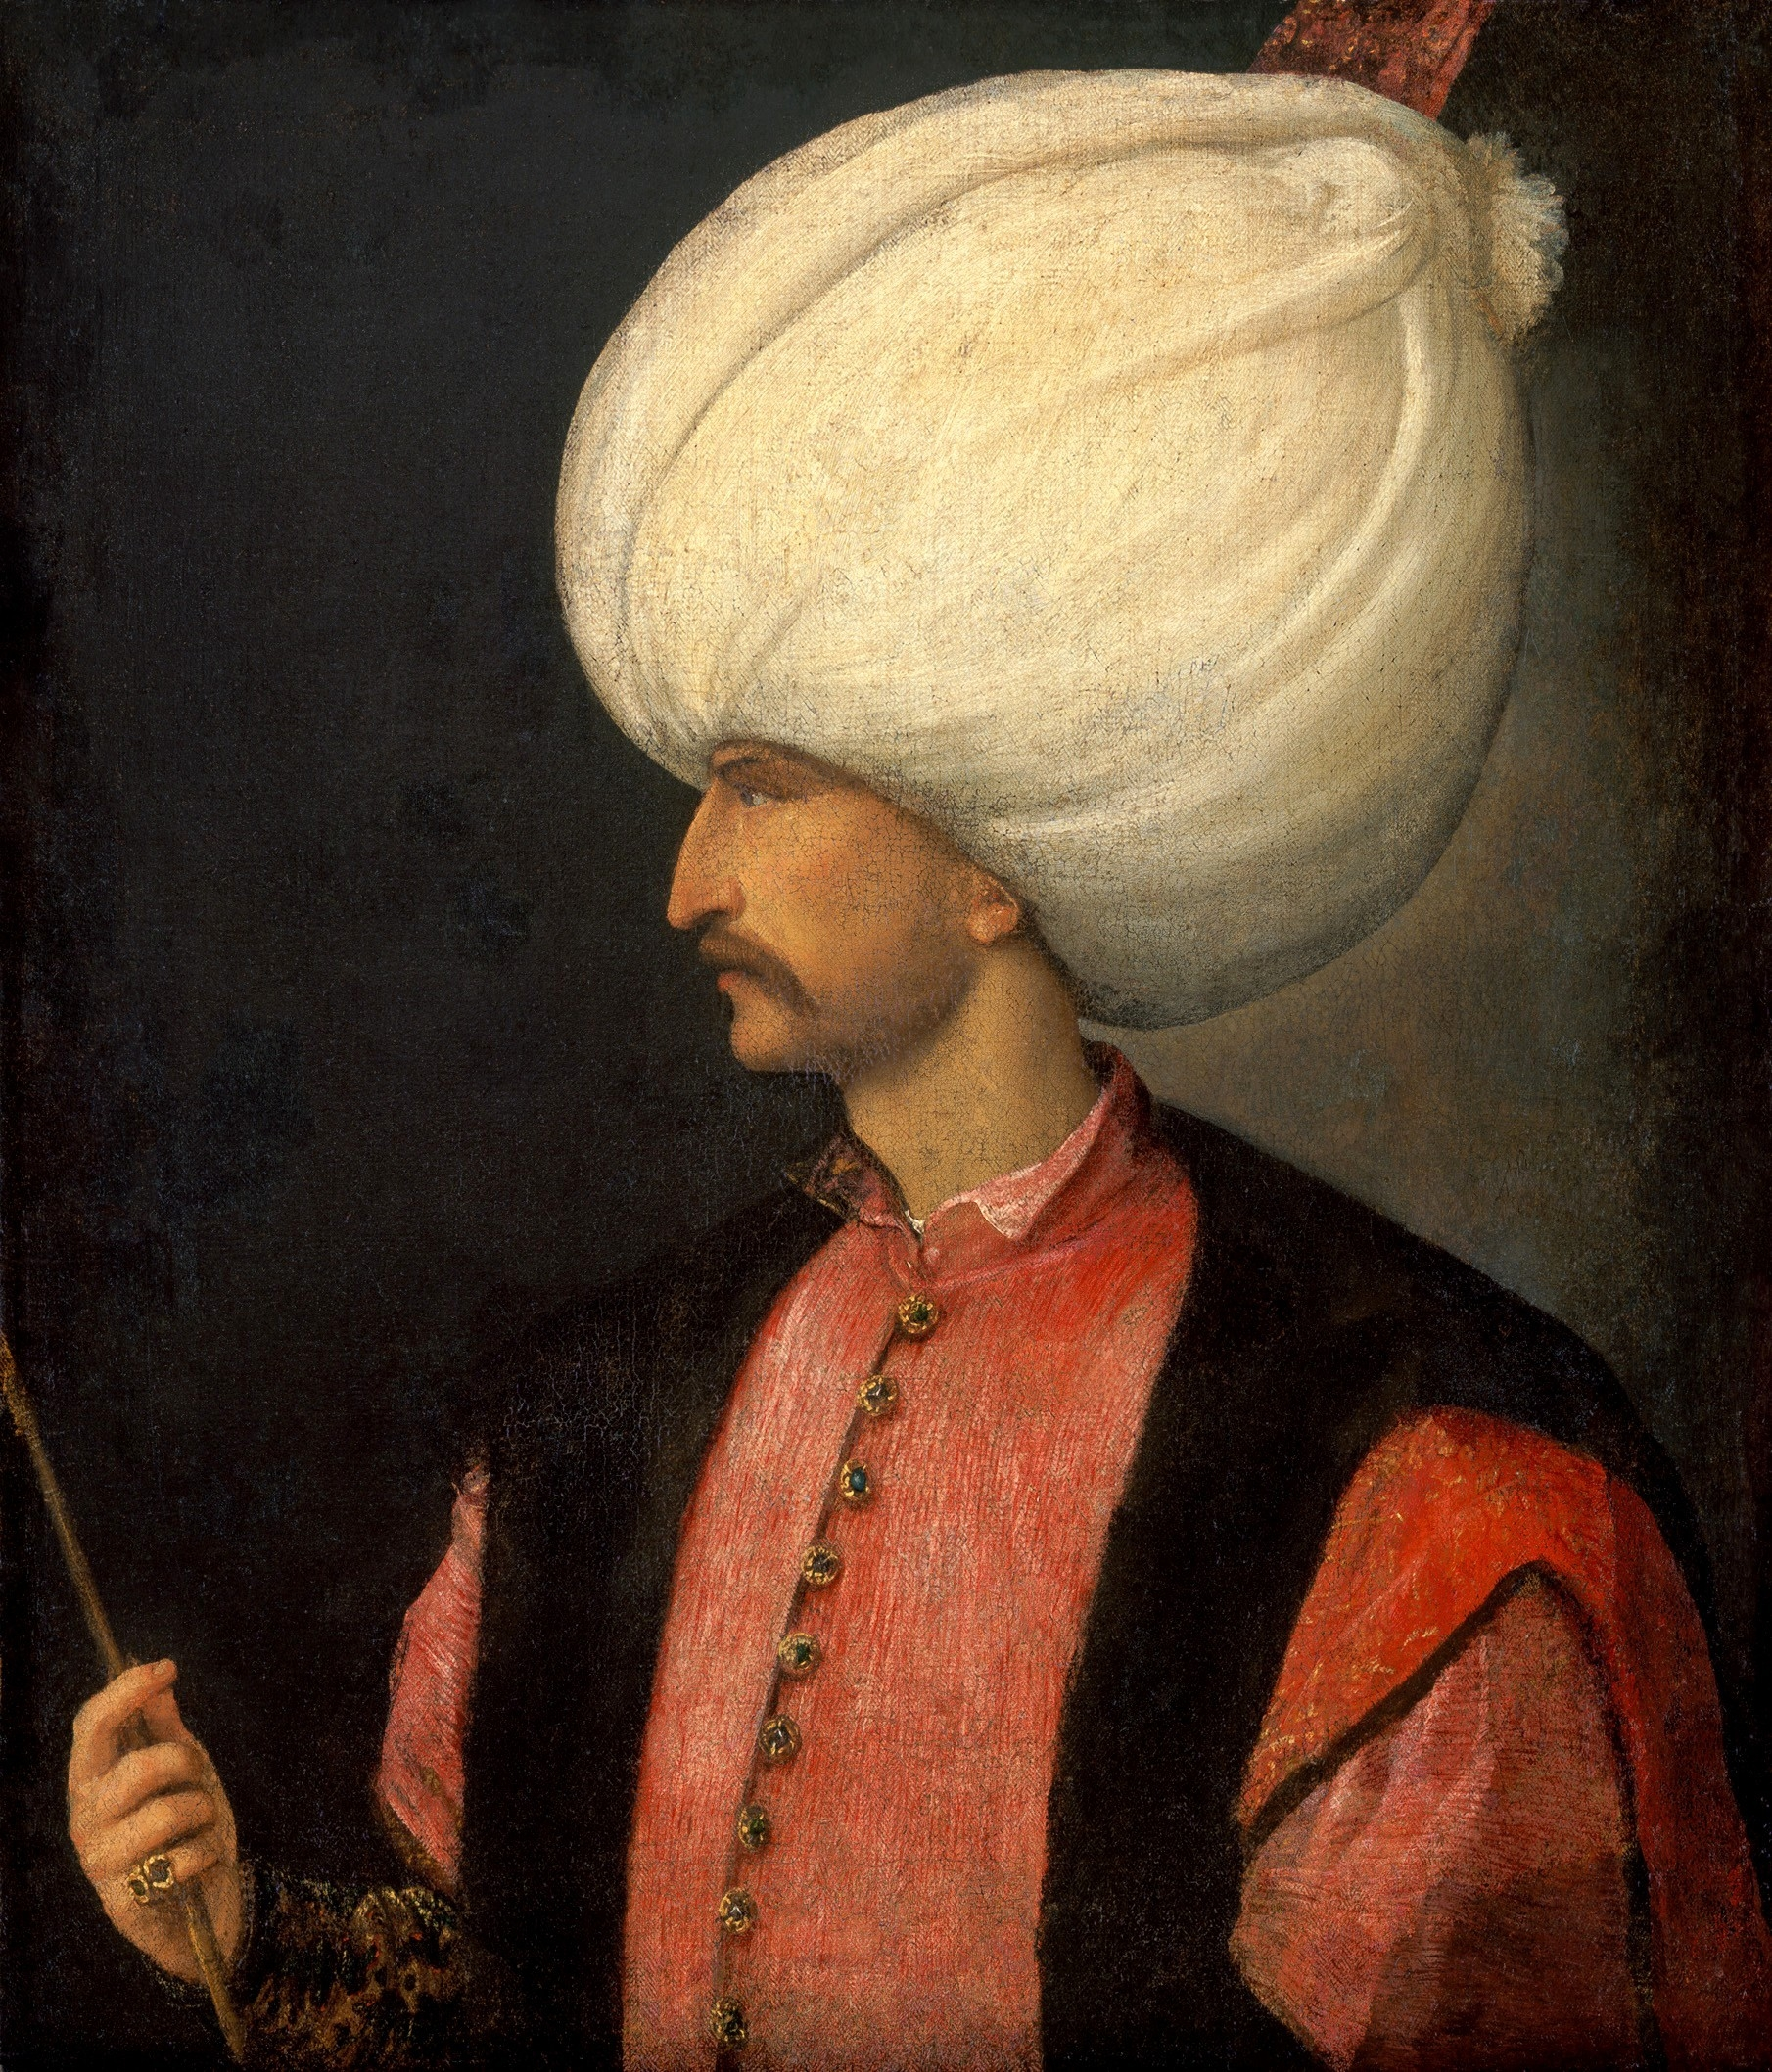 http://upload.wikimedia.org/wikipedia/commons/e/e9/EmperorSuleiman.jpg